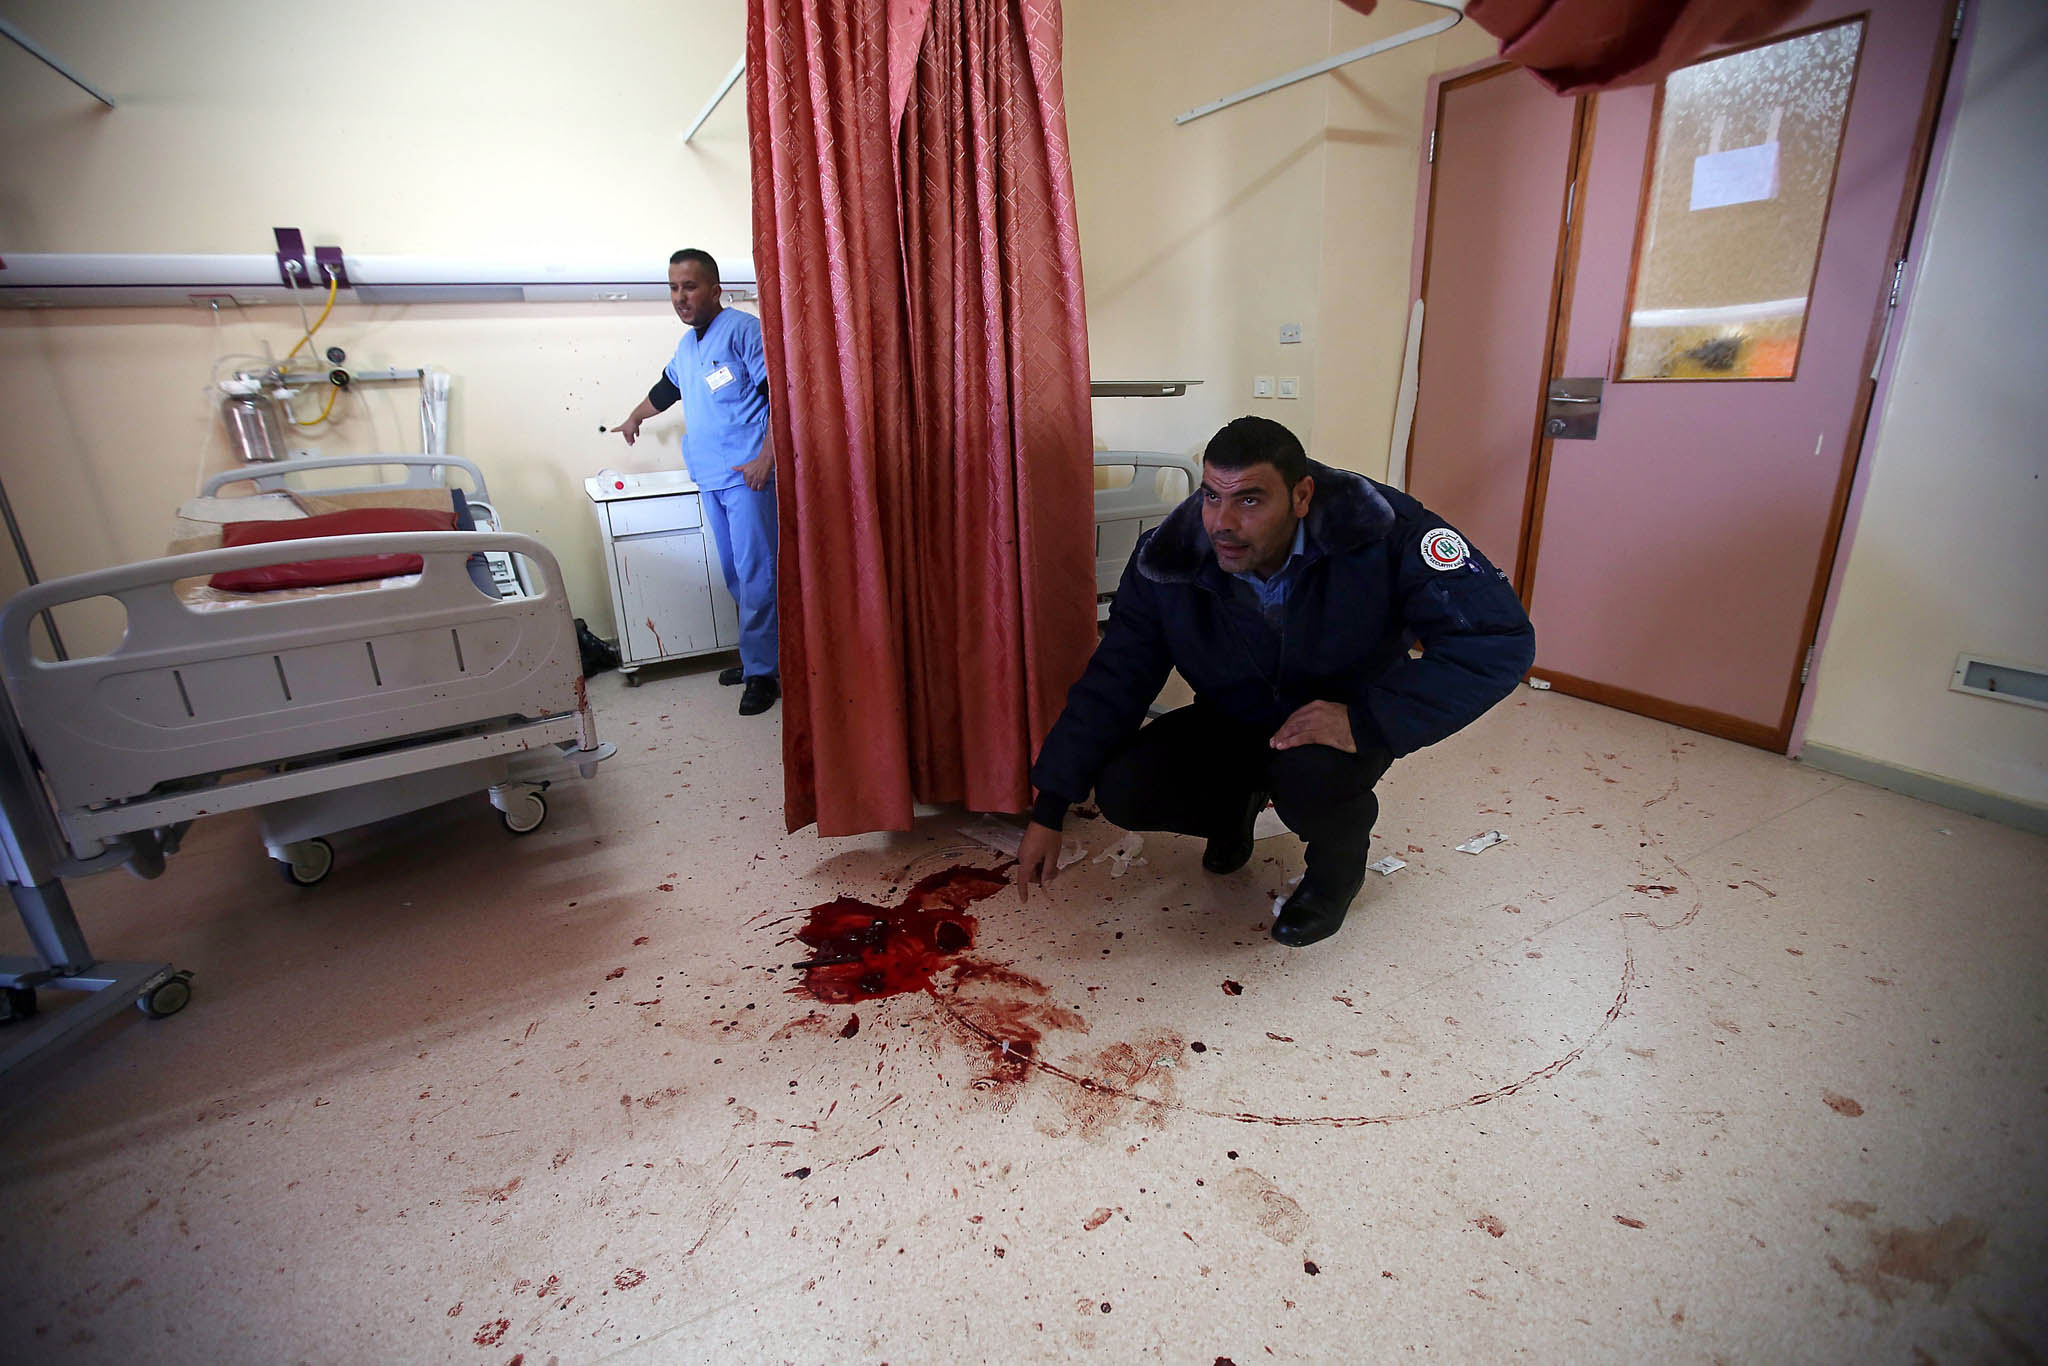 Israeli forces raid West Bank hospital...epa05021437 Palestinian hospital security checks the room where Israeli special forces killed 27 years old Abdallah Shalaldeh and arrested his cousin at the Al-Ahli hospital in the West Bank city of Hebron 12 November 2015. Shalaldeh was shot dead by Israeli special forces during a raid to arrest his cousin Azzam Shalaldeh. An undercover Israeli unit raided a southern West Bank hospital early 12 November, killing one Palestinian and seizing another, the Palestinian Health Ministry said. An Israeli military spokeswoman in Tel Aviv said that security forces had sought to apprehend a Palestinian accused of stabbing an Israeli outside a settlement bloc south of Jerusalem on 25 October 2015. The alleged Palestinian assailant, Azzam Shalaldeh, 20, had been shot by the Israeli victim. The Israeli was, in turn, severely injured with a stab wound to the chest.  EPA/ABED AL HASHLAMOUN ATTENTION EDITORS PICTURE CONTAINS GRAPHIC CONTENT